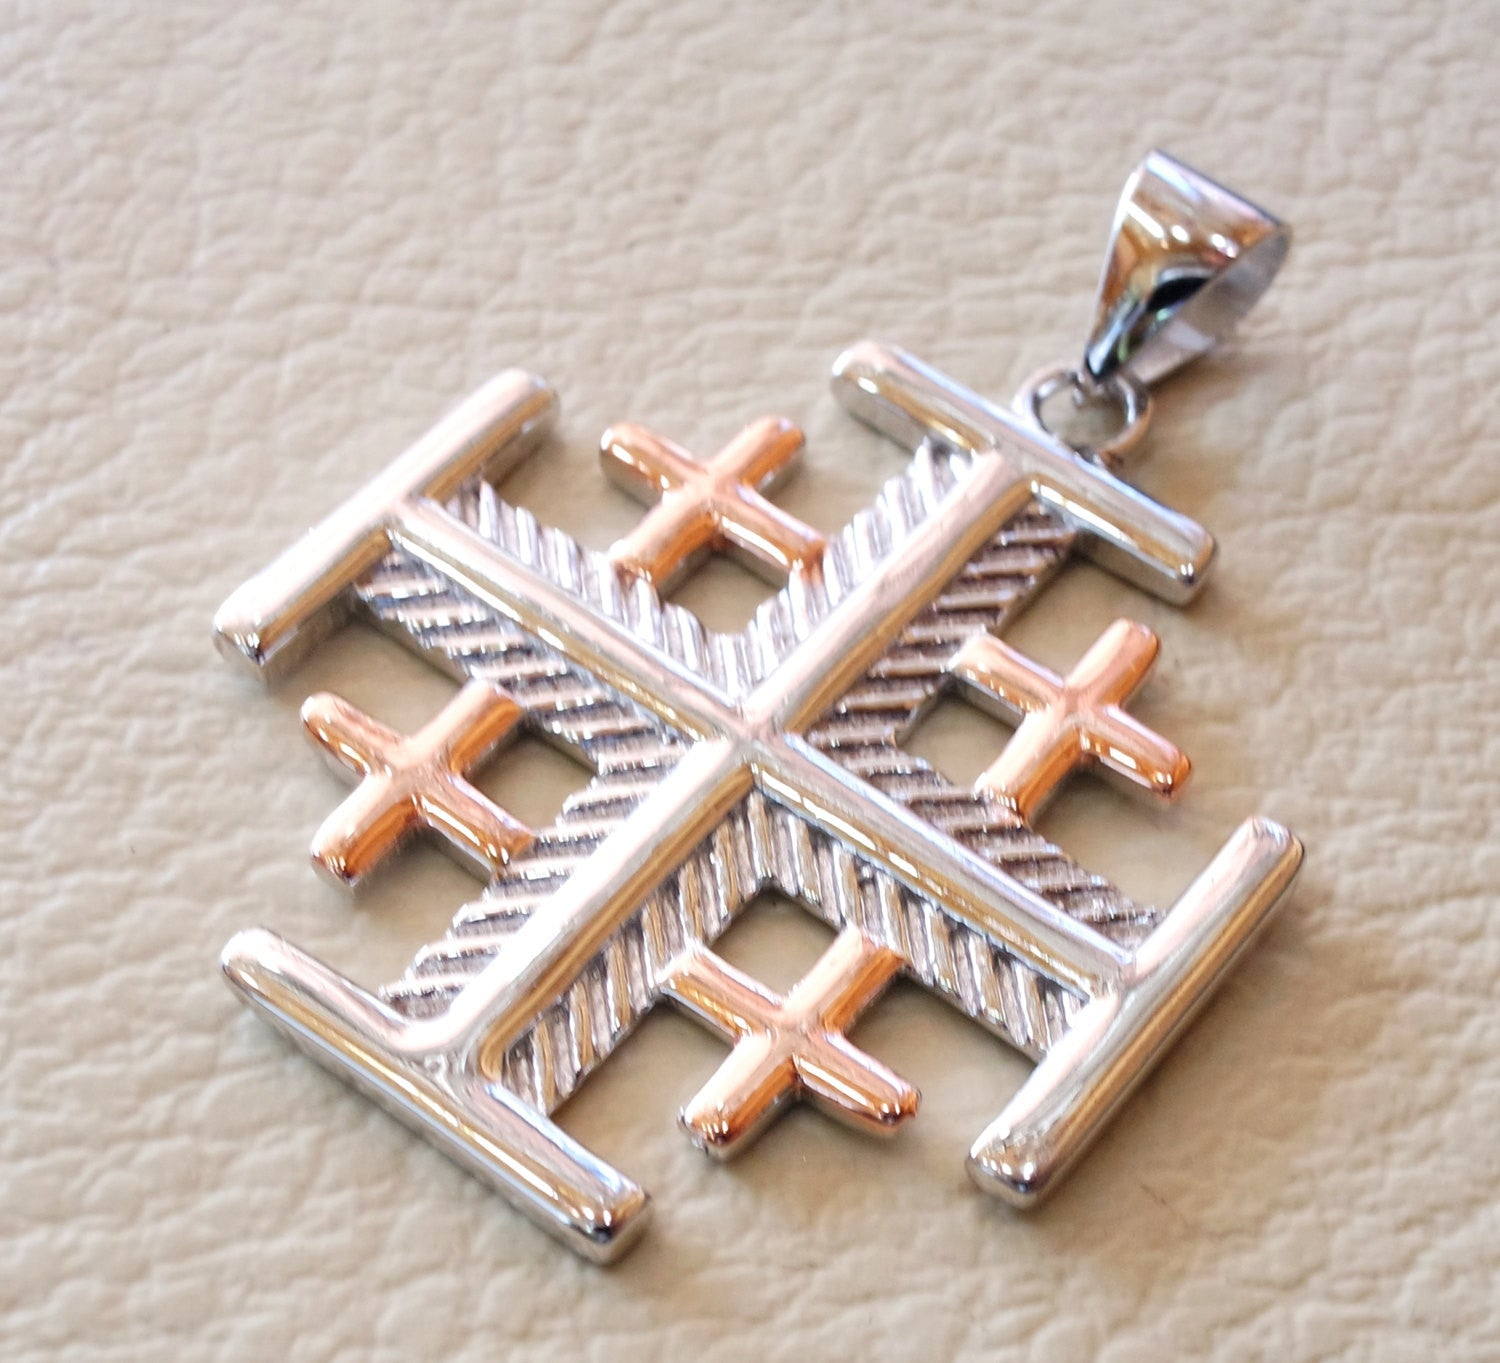 two a products jewelry heavy pendant eastern il tone silver middle fast cross vintage christianity fullxfull shipping jerusalem l sterling de handmade